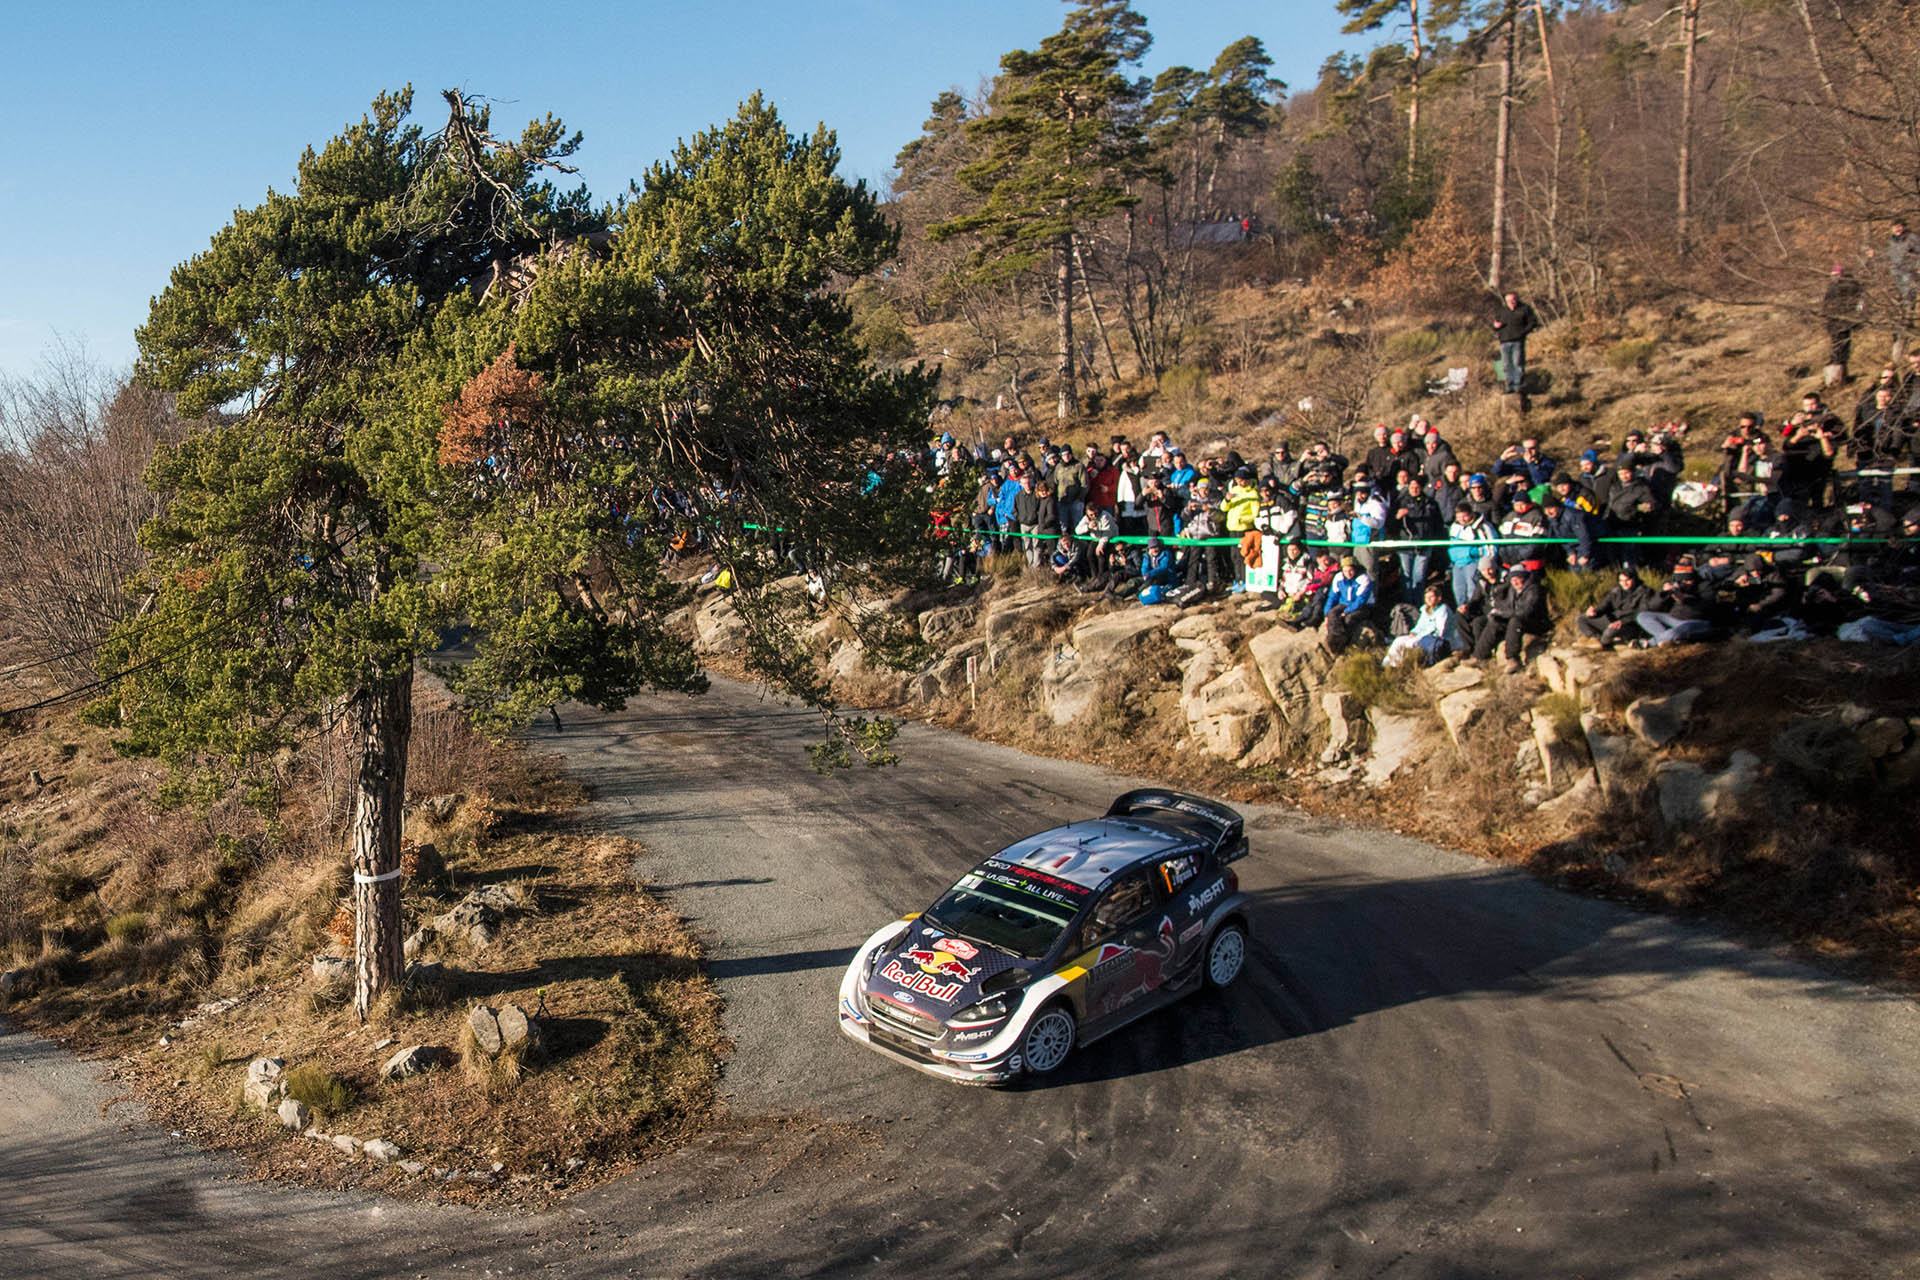 Sebastien Ogier and Julien Ingrassia in action during Rallye Monte Carlo